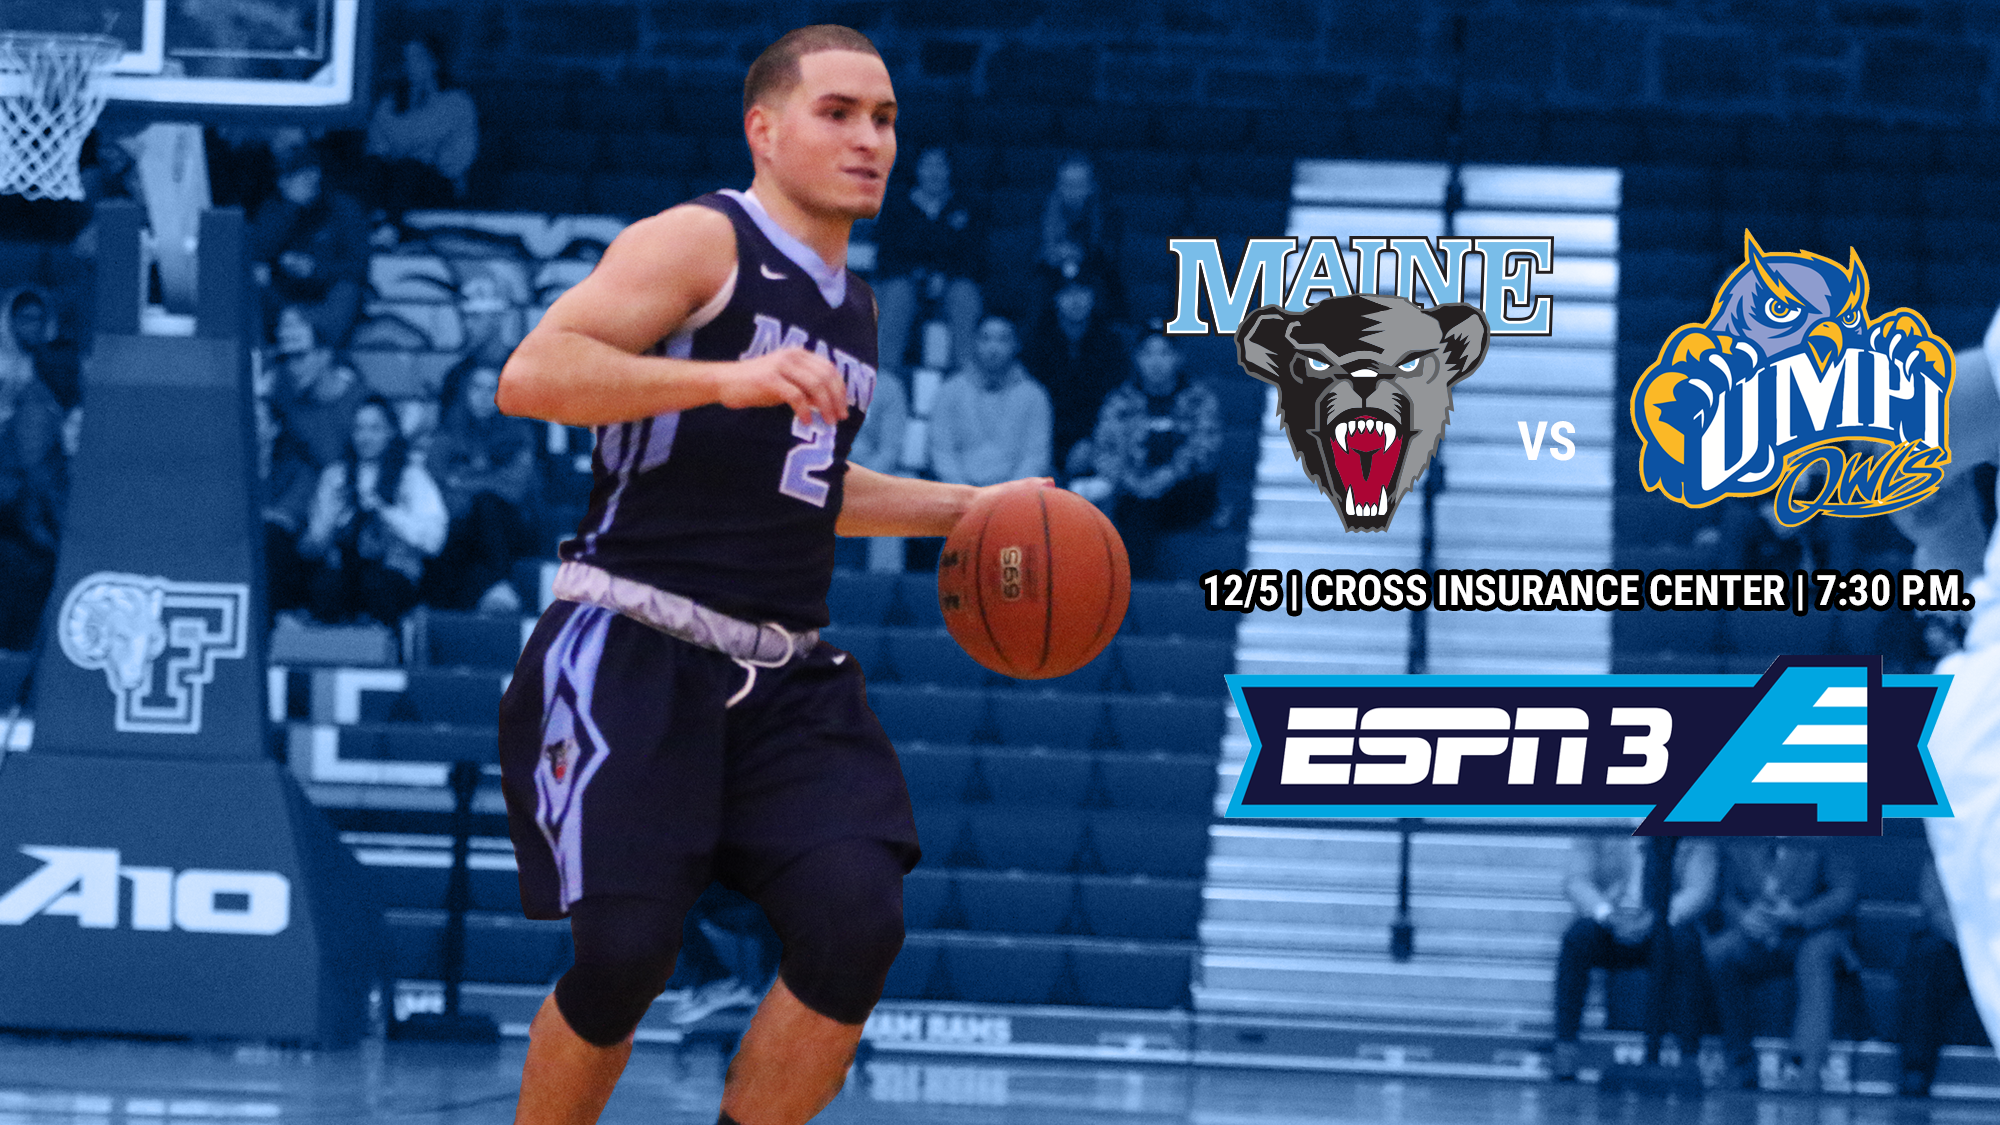 Men's Basketball Commences Three Game Home Stand on Tuesday